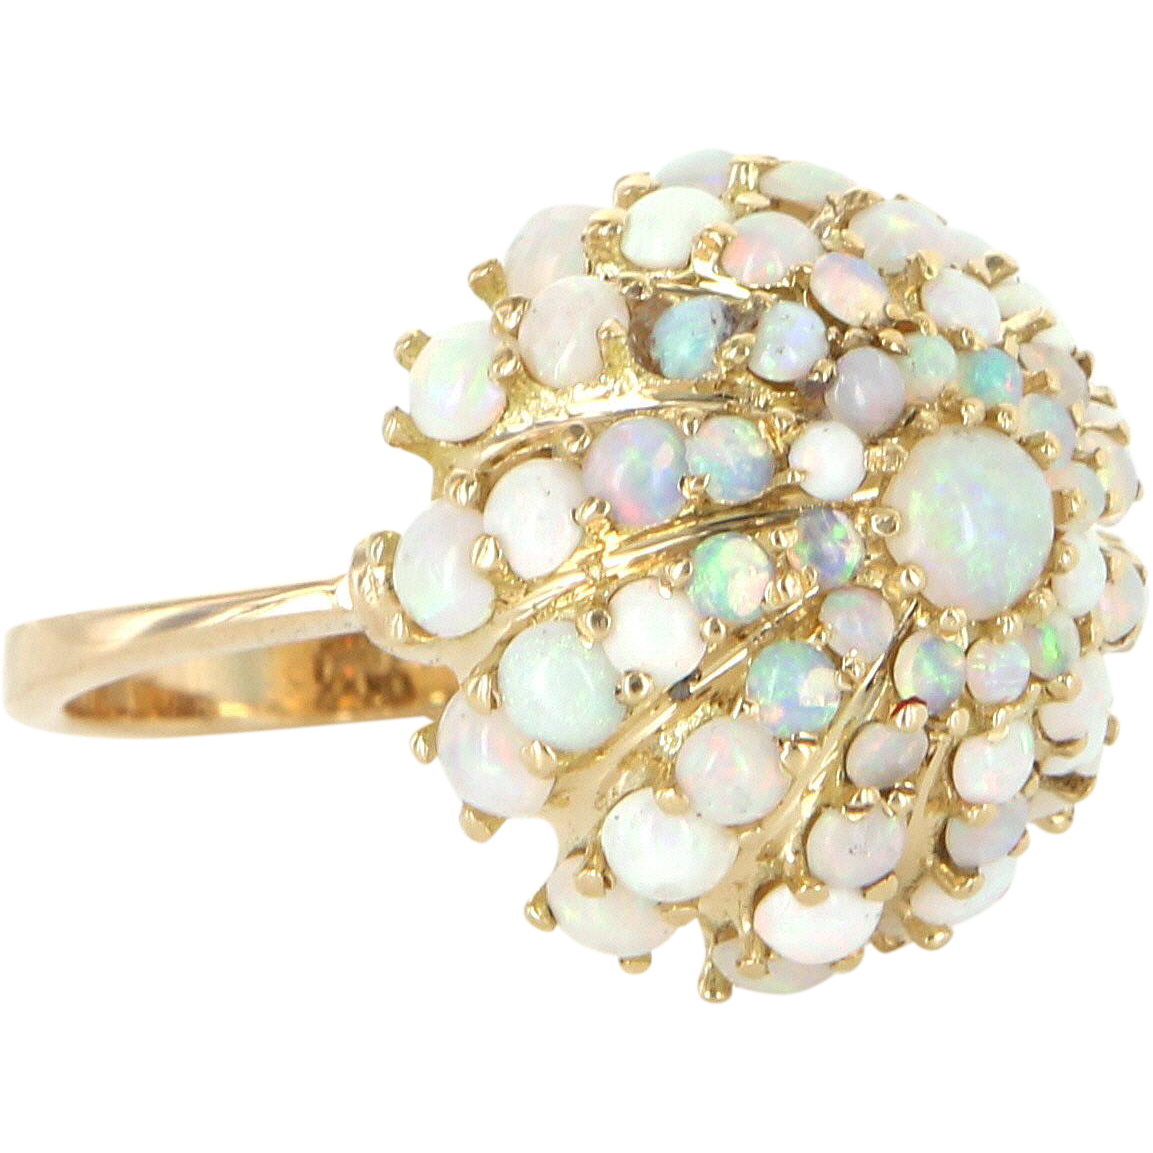 Opal Dome Cocktail Ring Vintage 18 Karat Yellow Gold Estate Fine Jewelry Heirloom 6.5